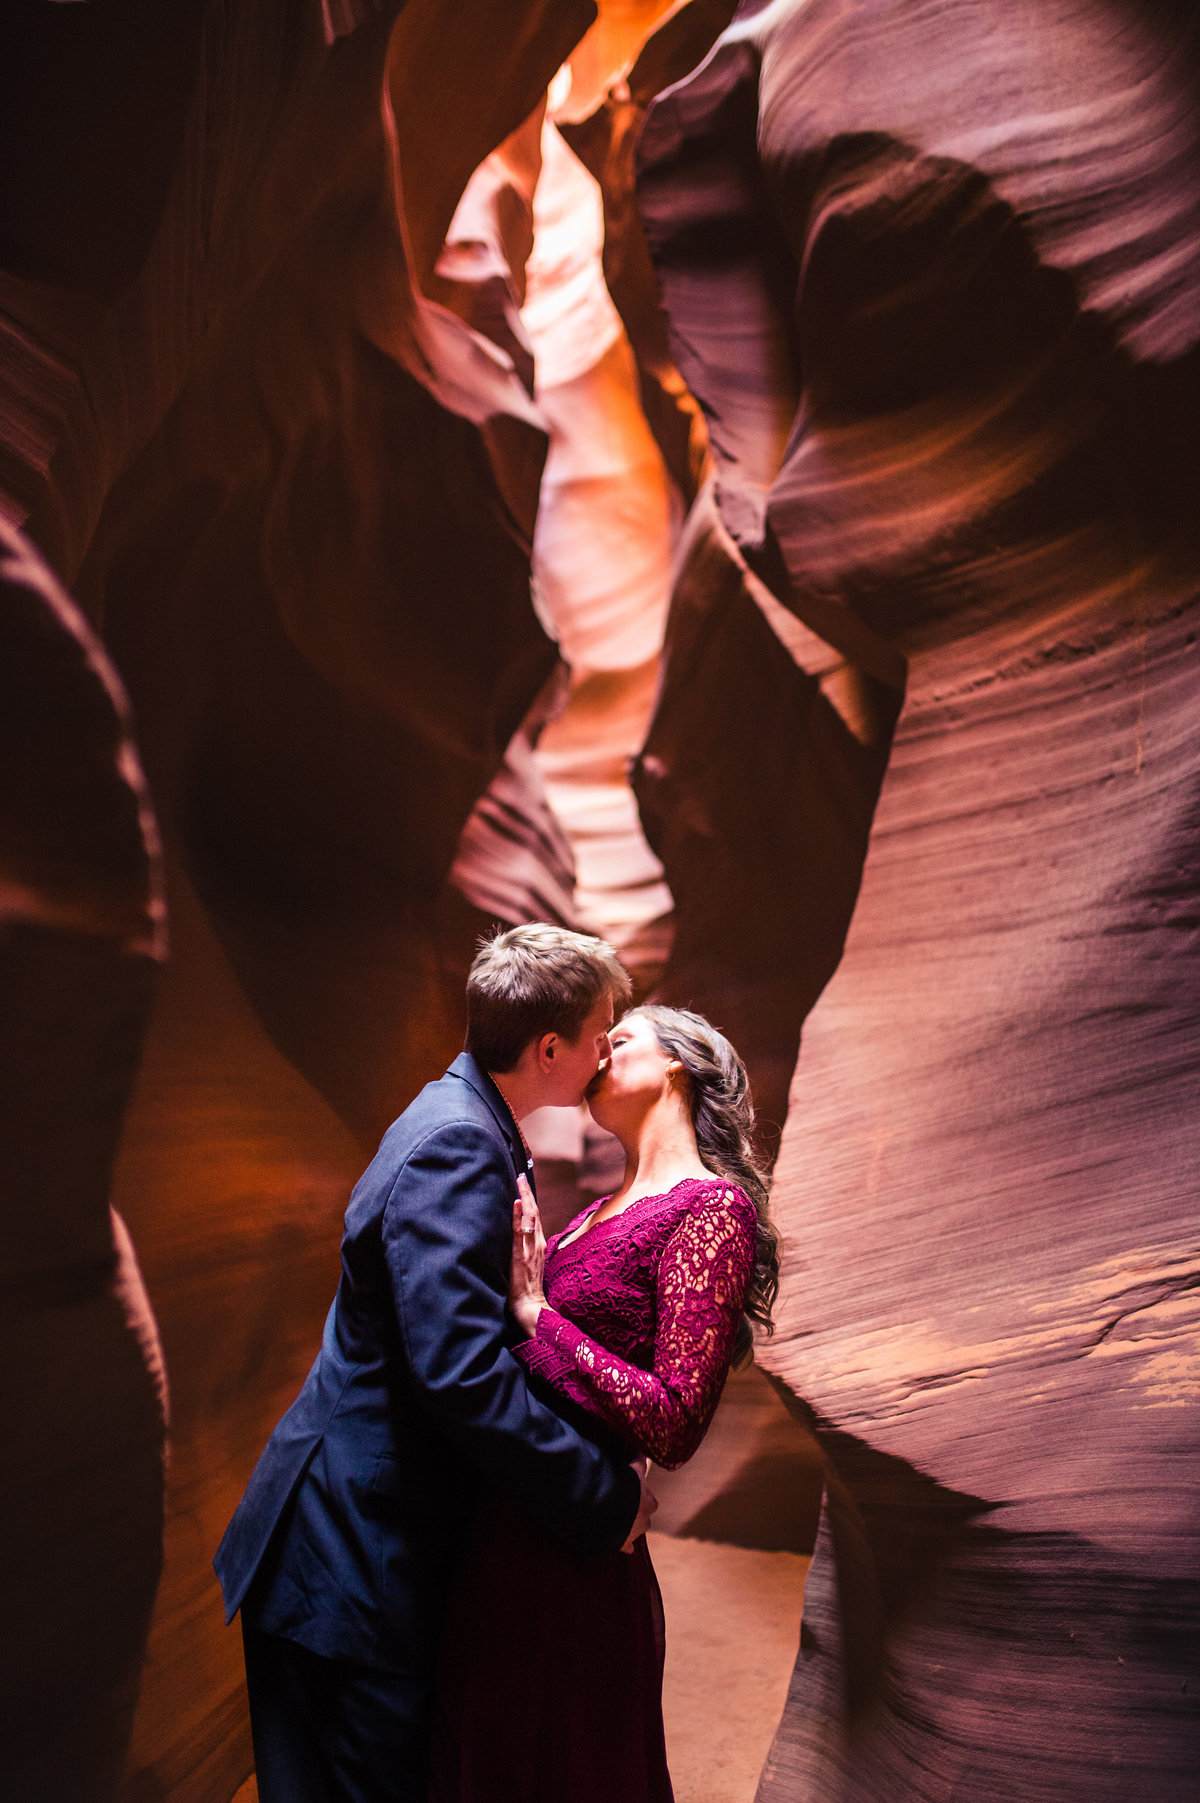 An adventure engagement session at Antelope, Canyon in Page, Arizona